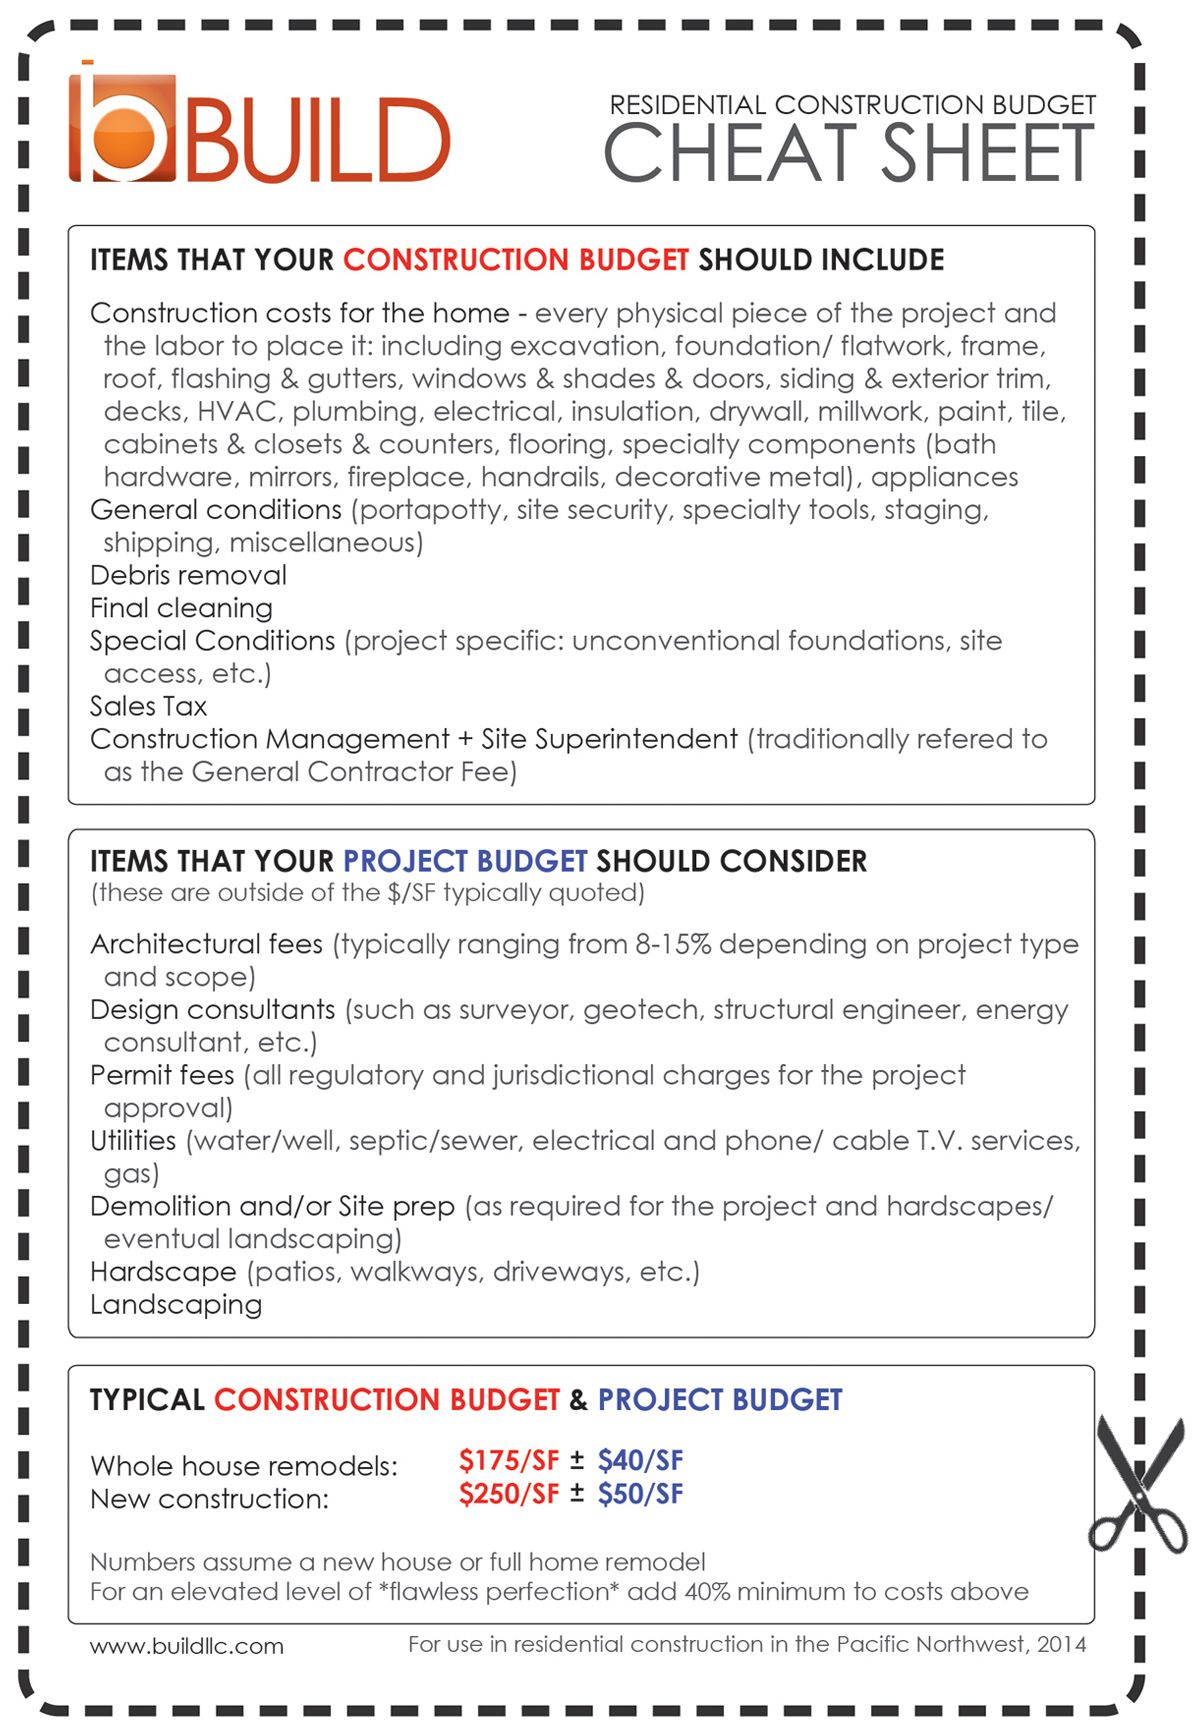 Kitchen Remodeling Contract Sample Builder App Defining A Construction Budget The 2014 Cheat Sheet